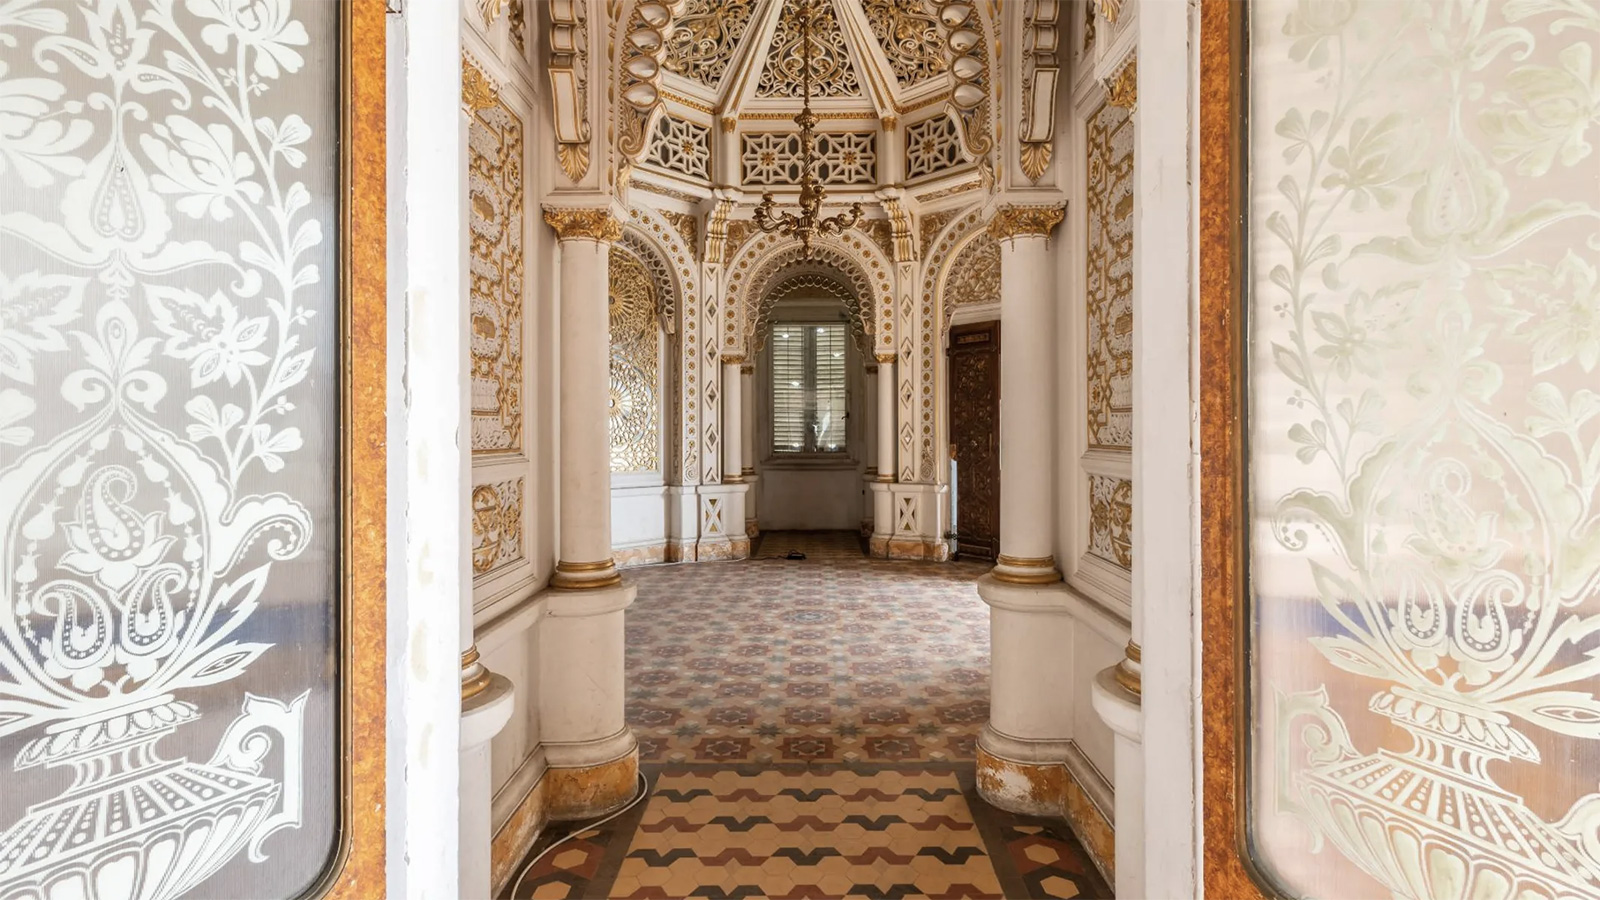 Kaleidoscopic Sammezzano Castle beloved by urban explorers lists for $18.3m in Tuscany